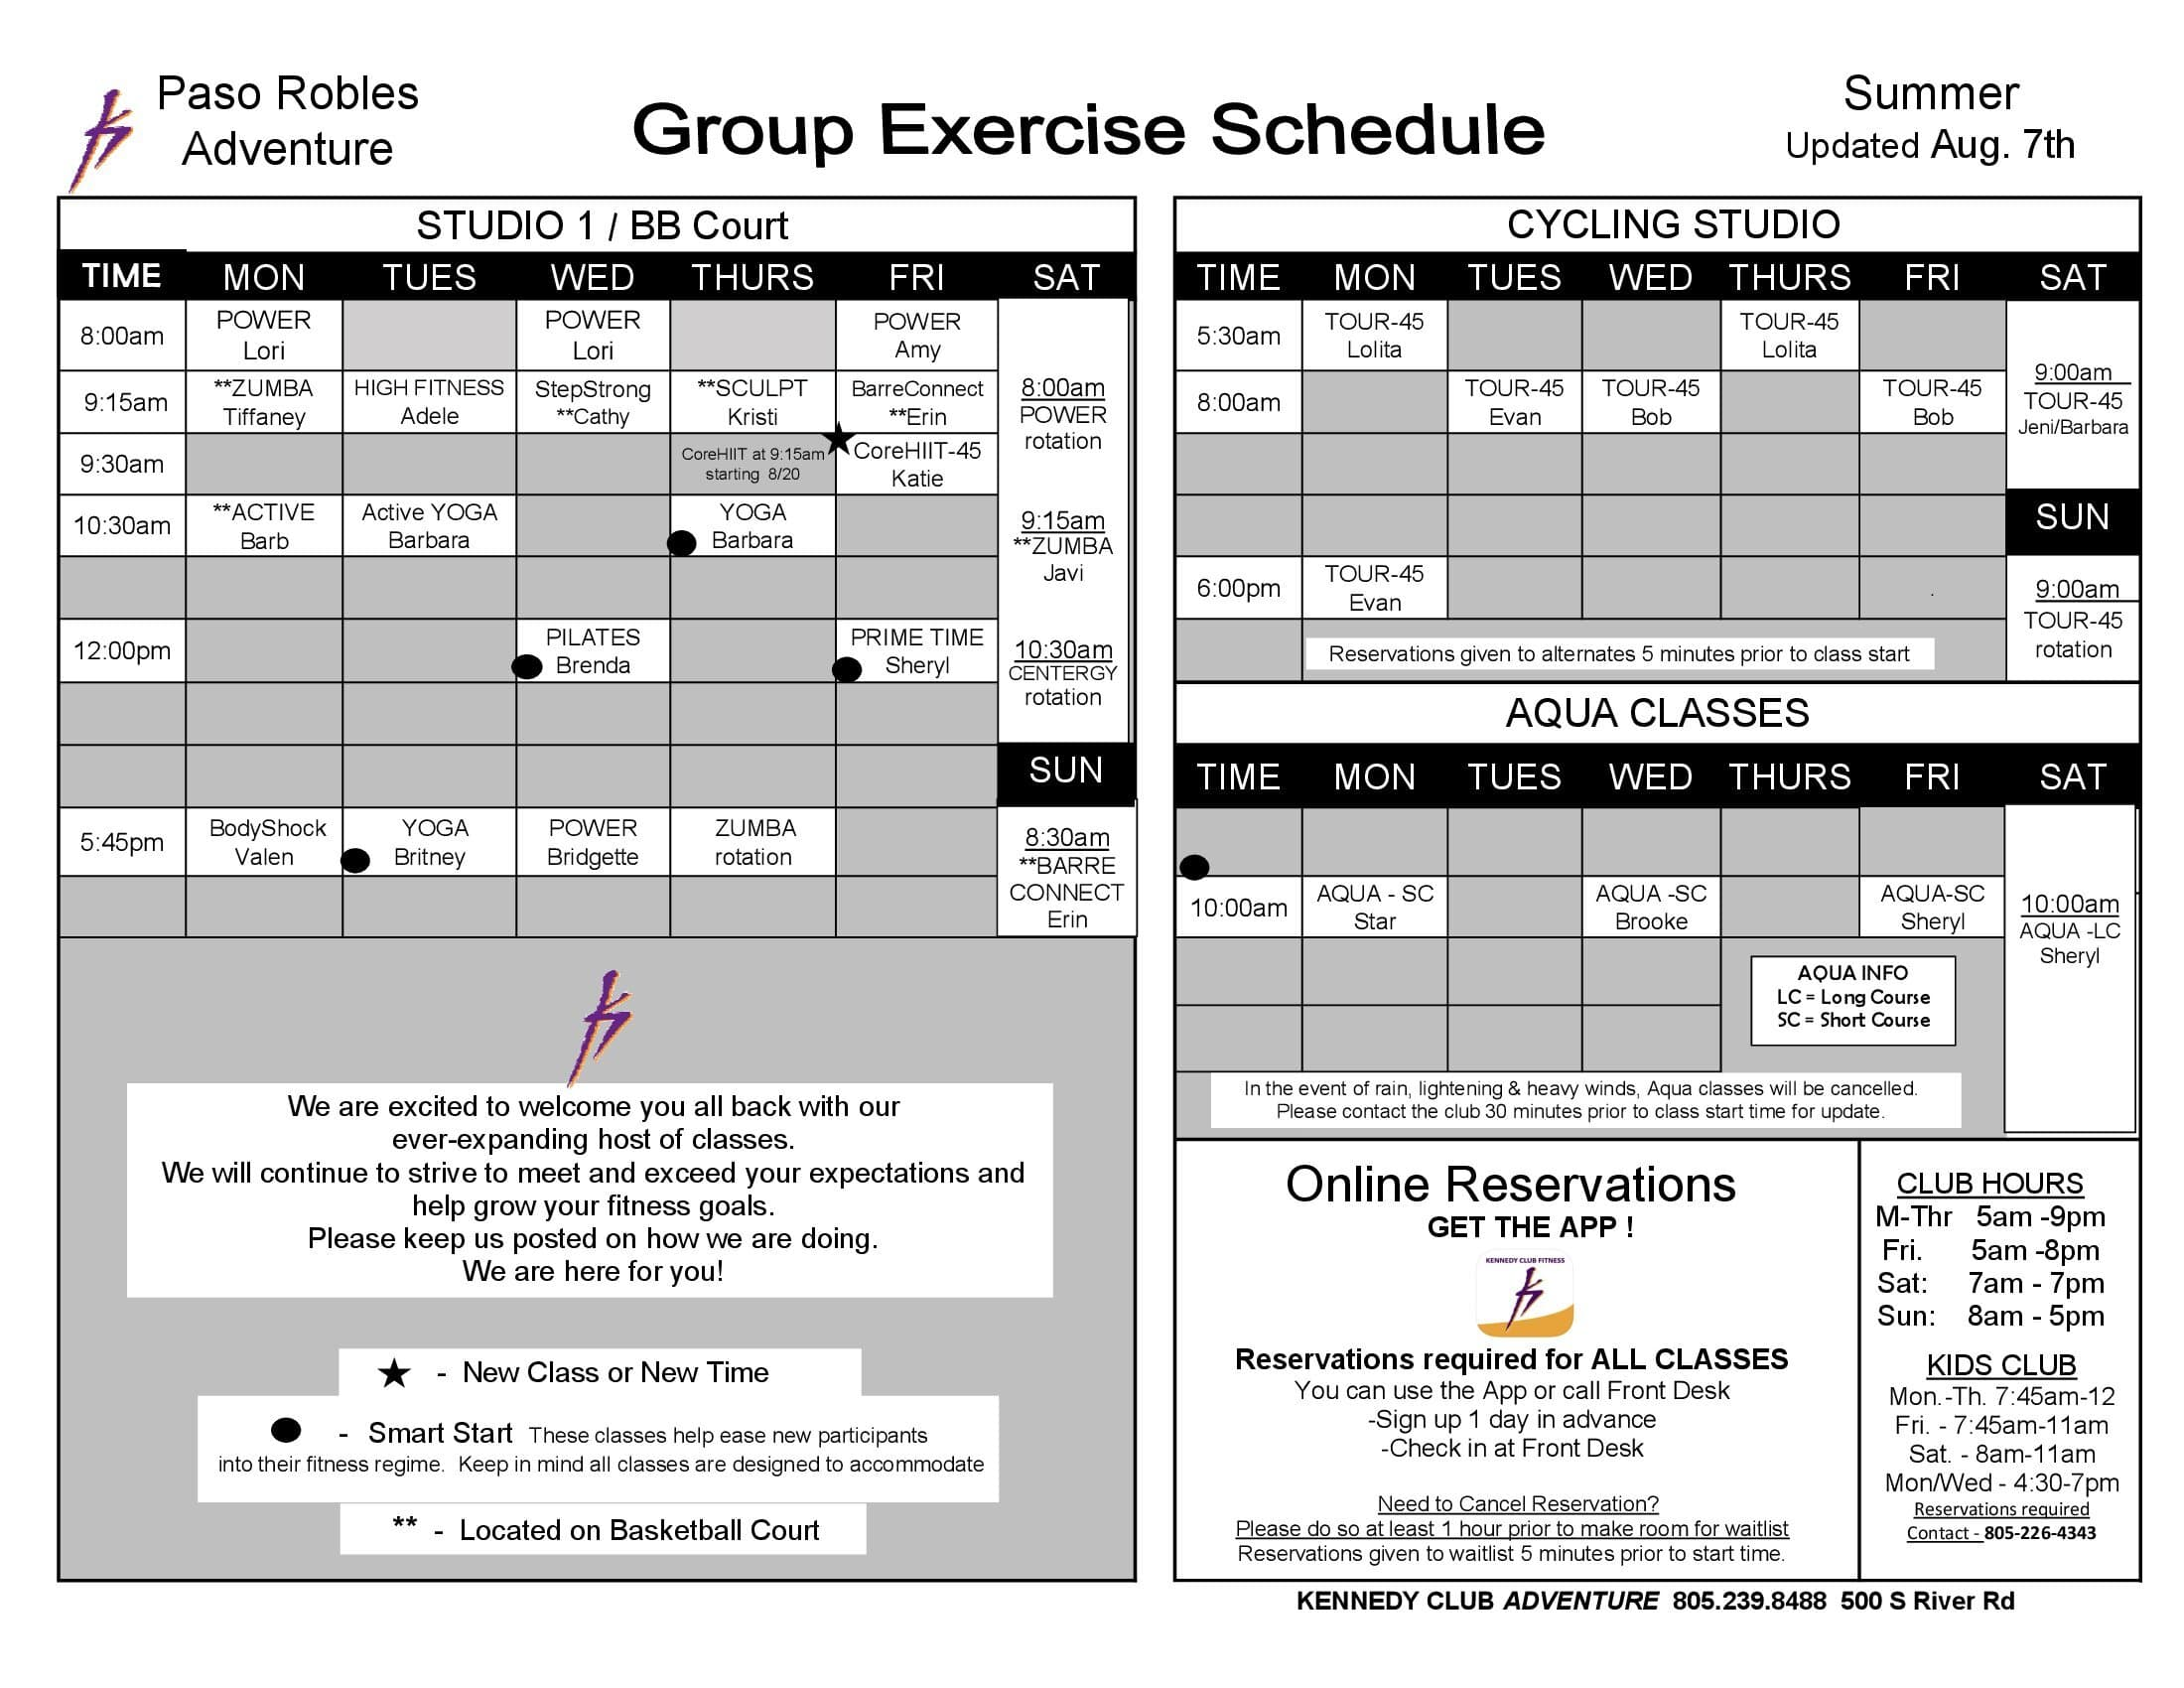 Kennedy Club Fitness Paso Robles Group Exercise Schedule 08 07 2021